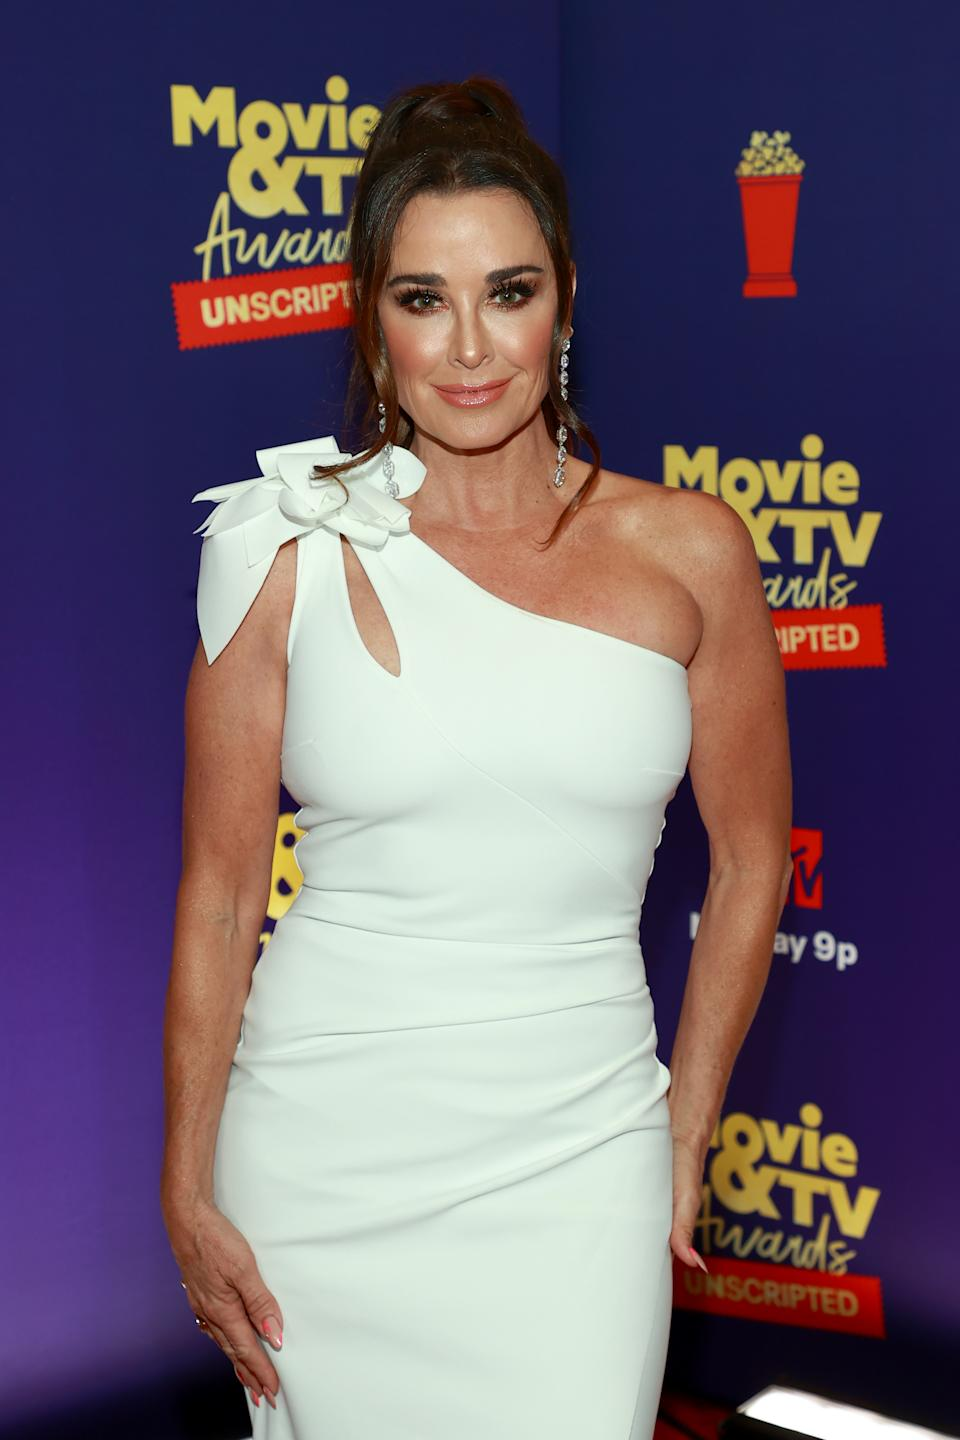 LOS ANGELES, CALIFORNIA - MAY 17: In this image released on May 17, Kyle Richards attends the 2021 MTV Movie & TV Awards: UNSCRIPTED in Los Angeles, California. (Photo by Matt Winkelmeyer/2021 MTV Movie and TV Awards/Getty Images for MTV/ViacomCBS)